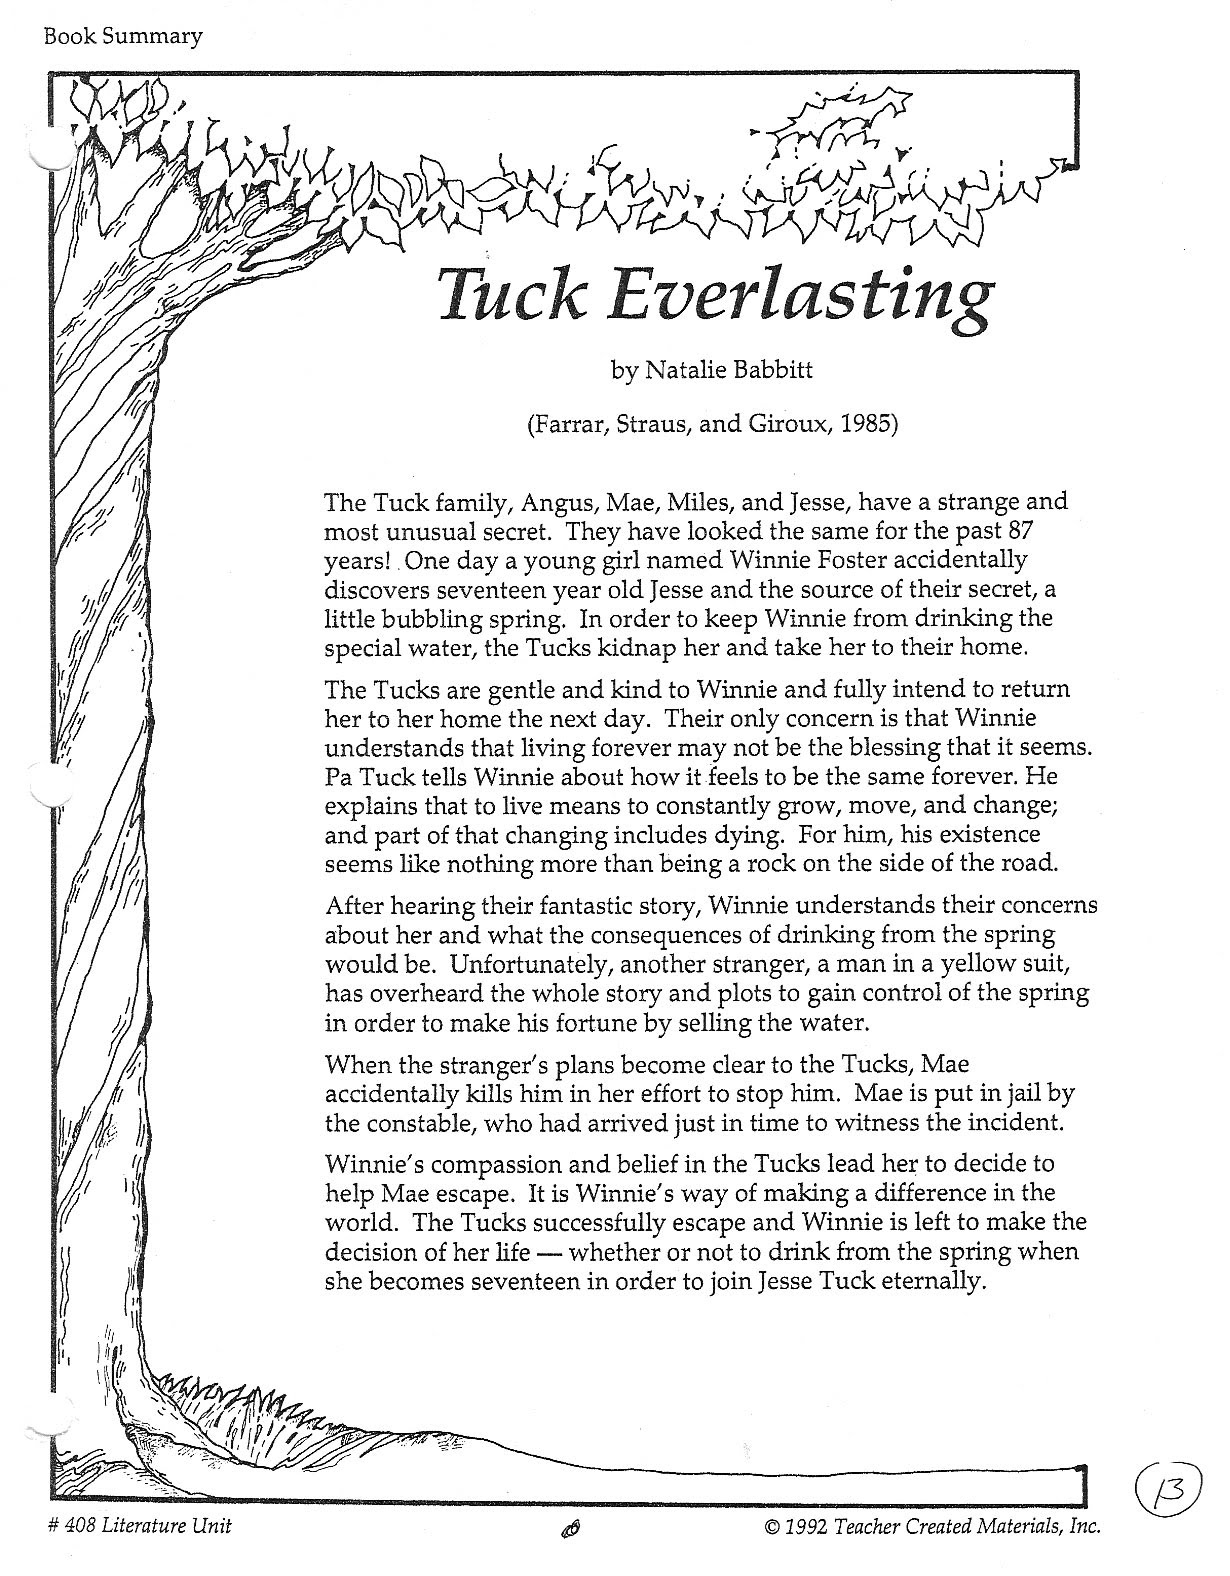 Worksheets Tuck Everlasting Worksheets tuck everlasting p14comparingtuck jpg p15evaluating everlasting